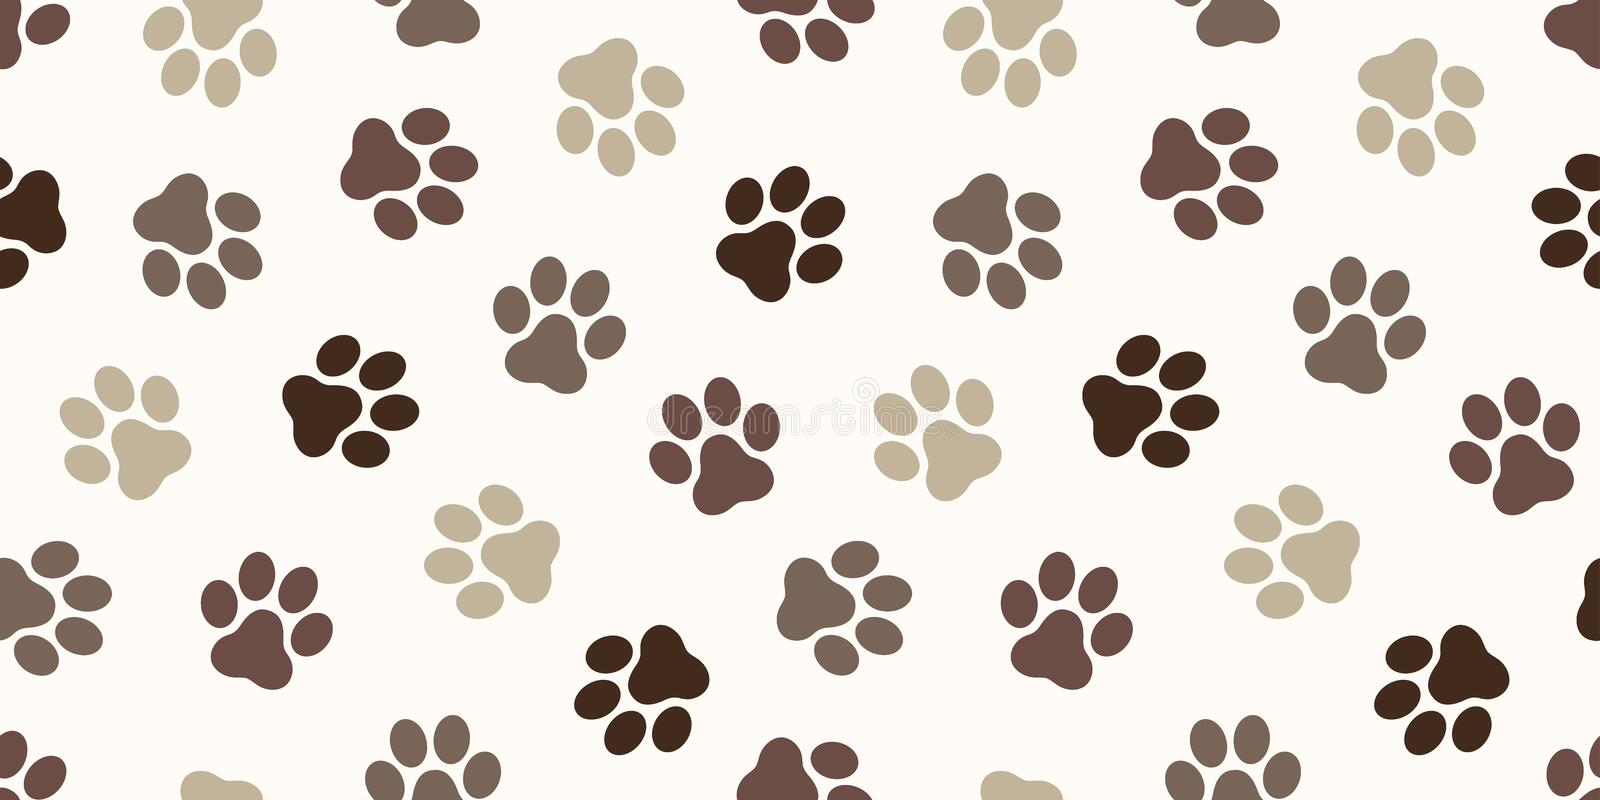 Dog Paw Seamless Pattern vector Cat paw foot print isolated wallpaper background backdrop brown. Dog Paw Seamless Pattern vector Cat paw foot print isolated vector illustration